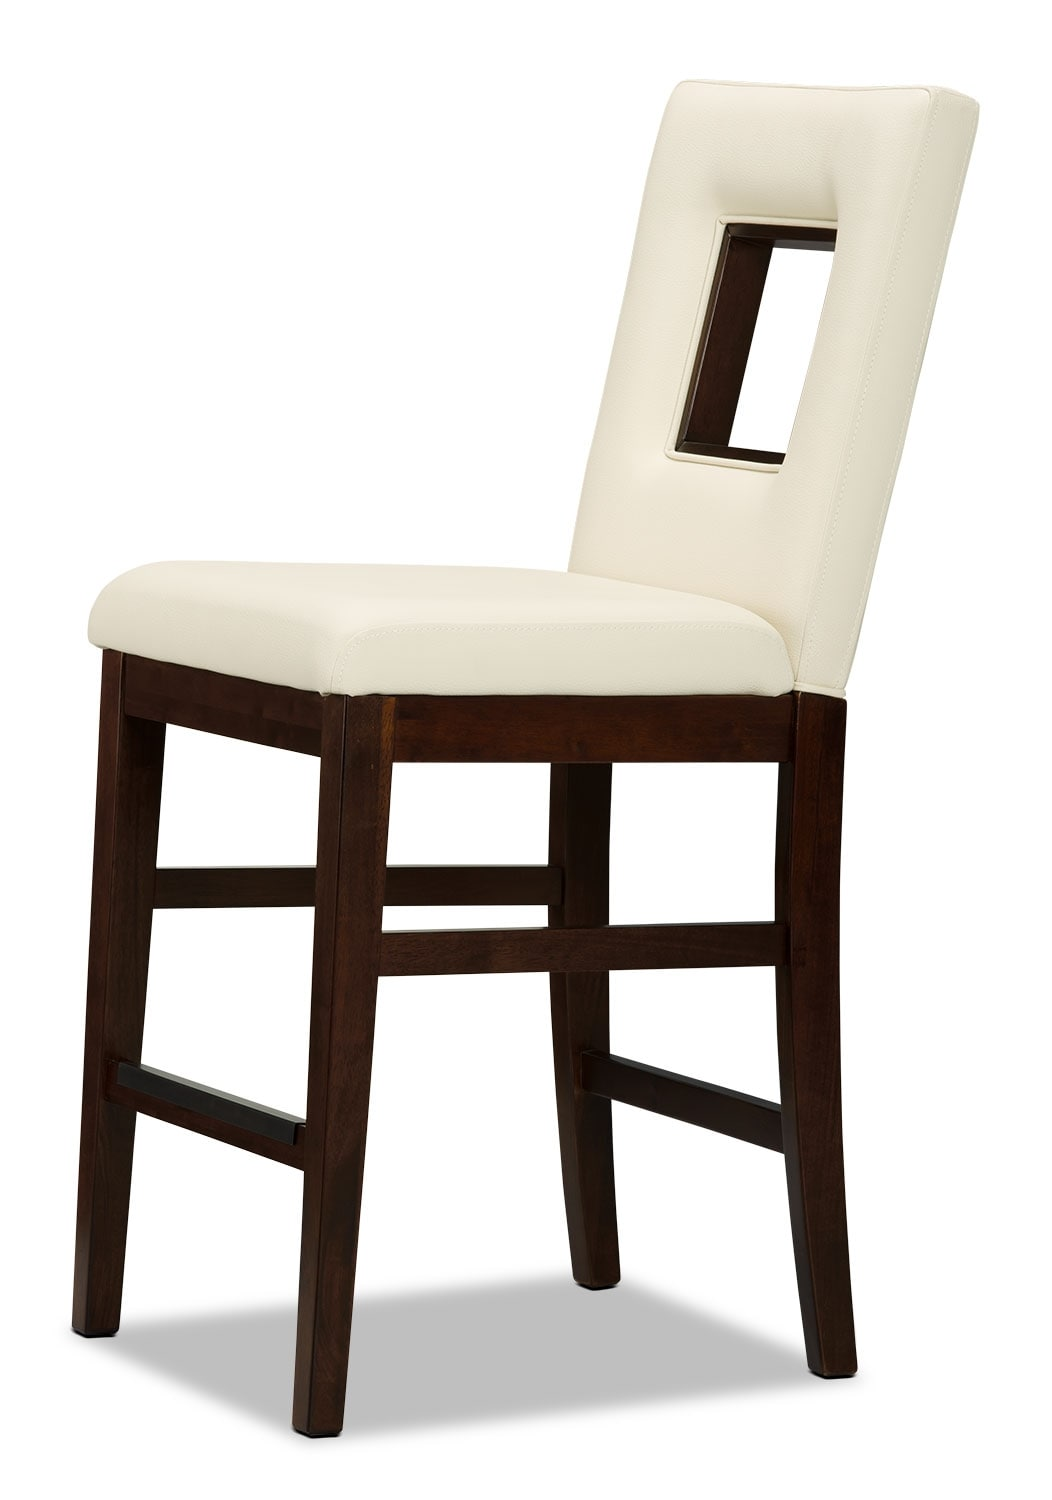 Enzo Counter Height Dining Chair The Brick